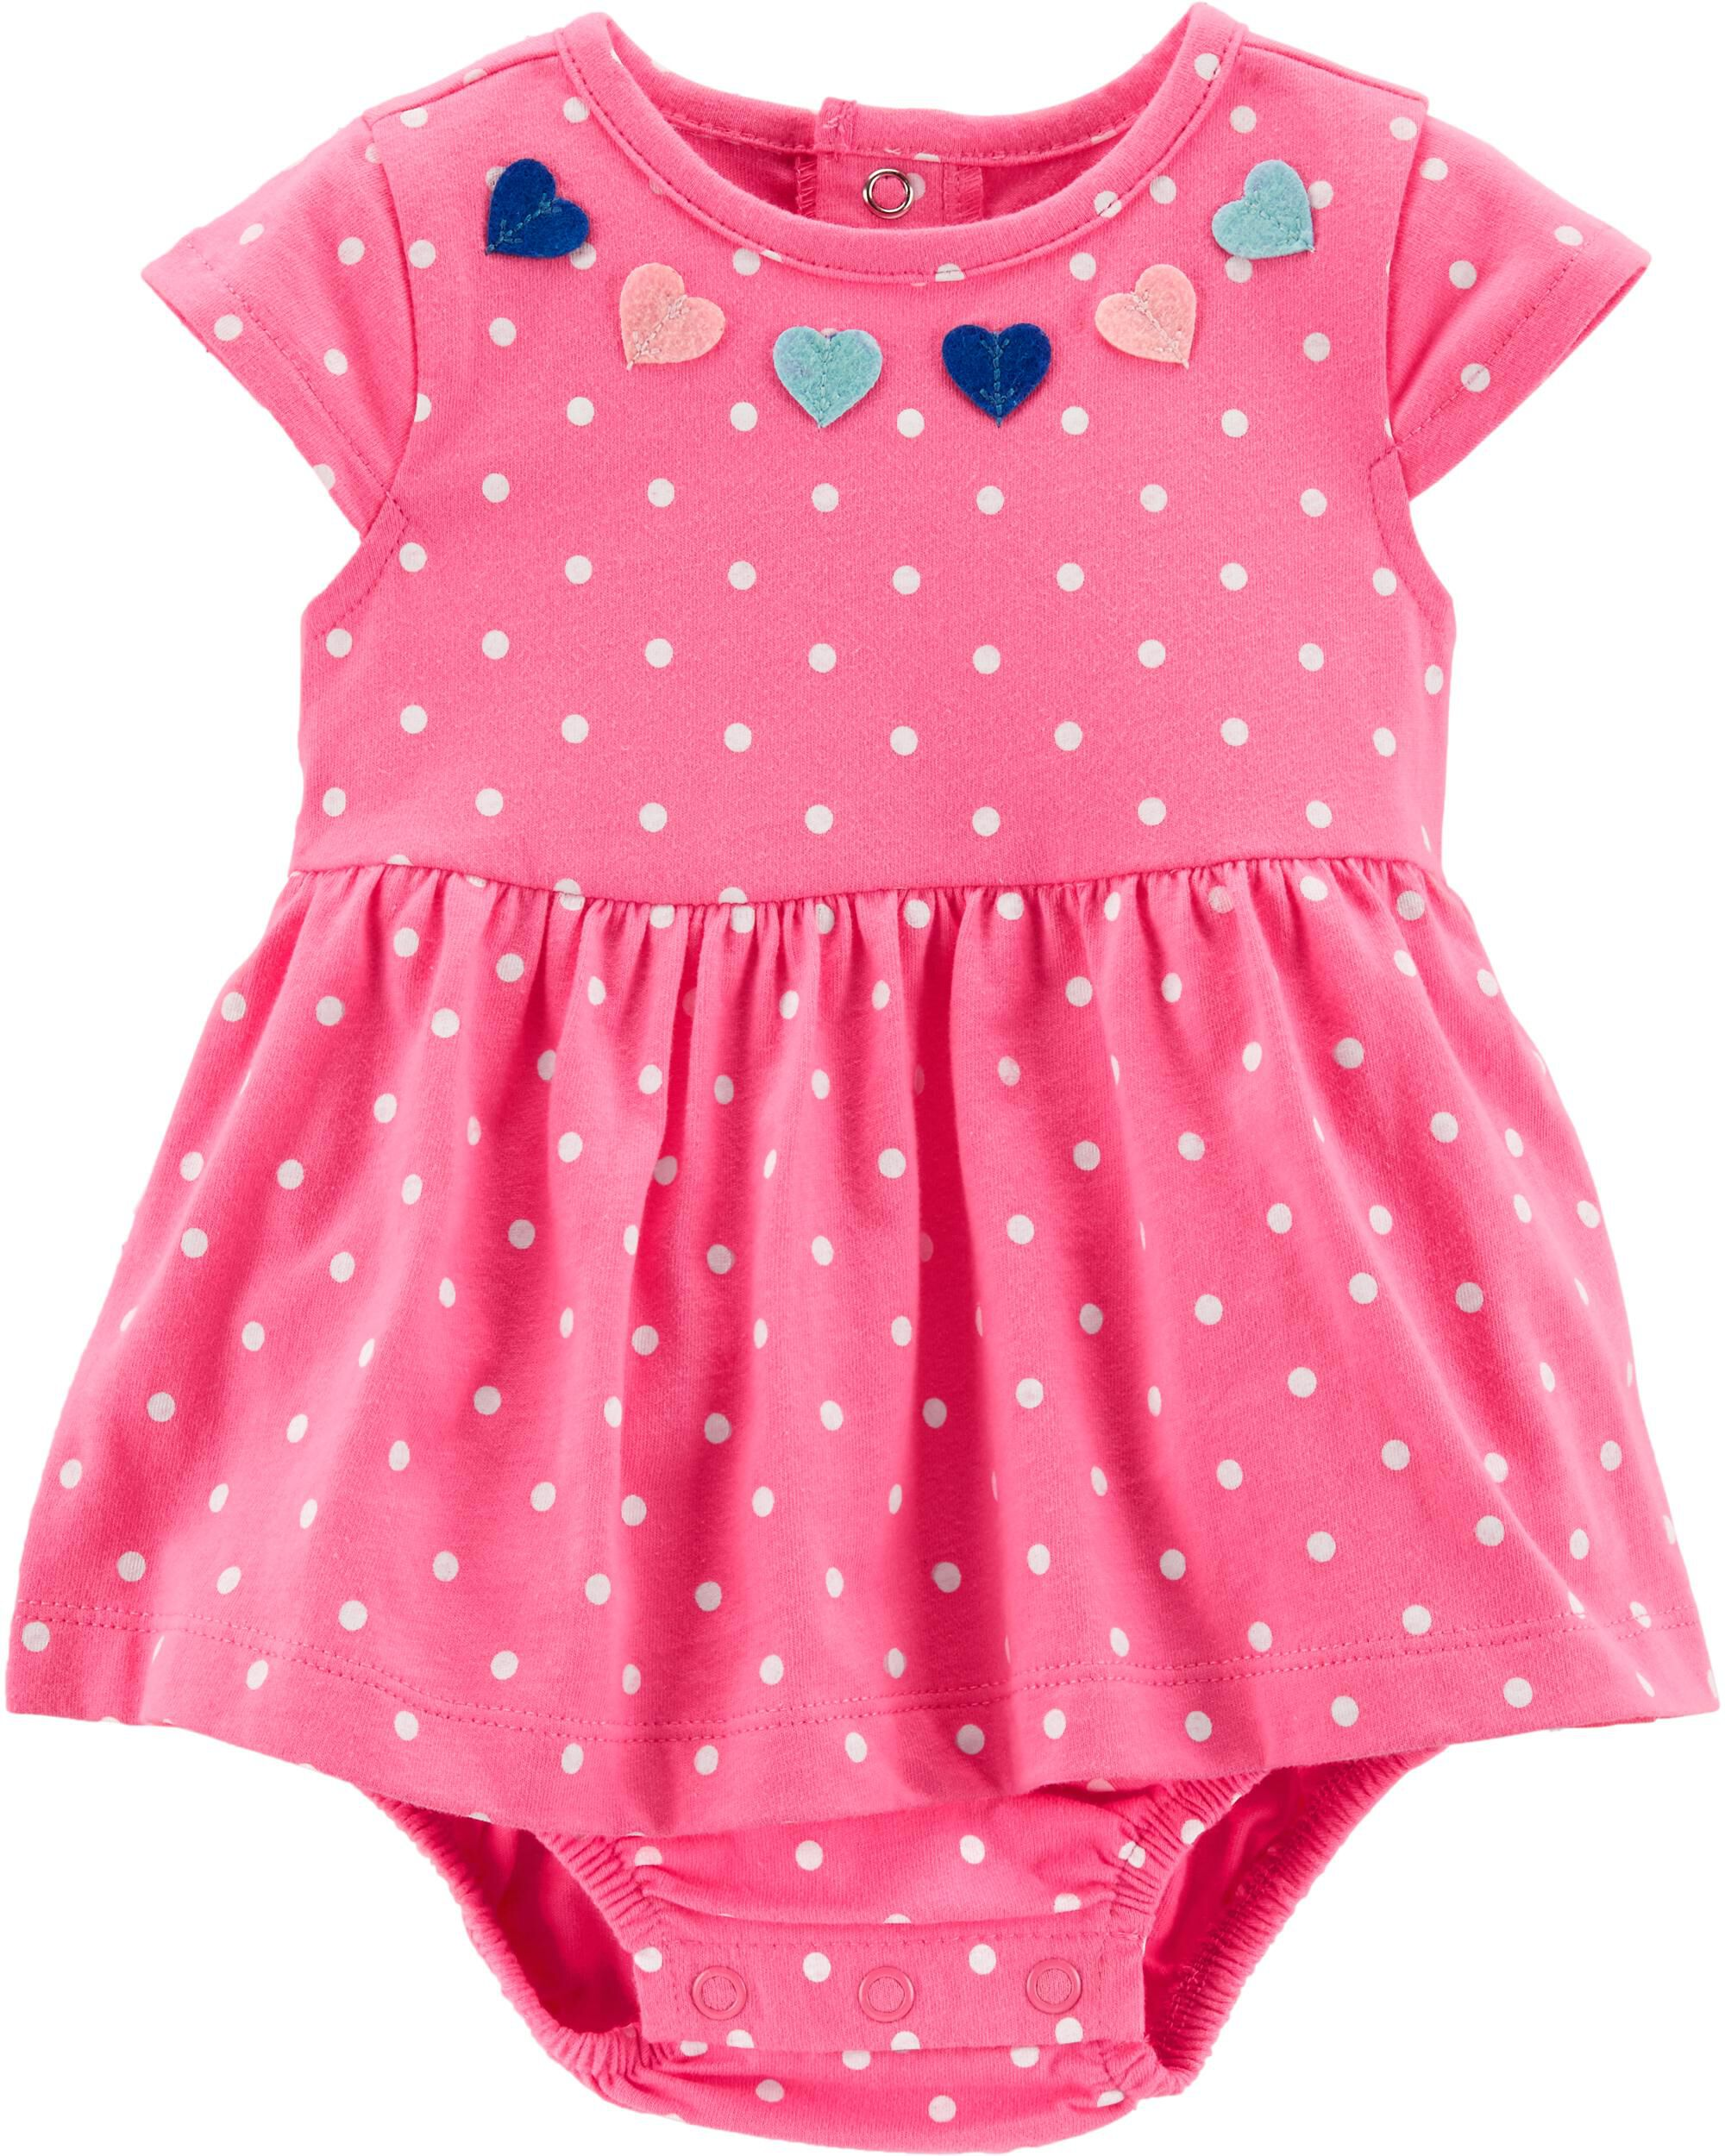 The Best Baby Girls Pink Polka Dot Skirt 1 To 1.5 Years Baby & Toddler Clothing